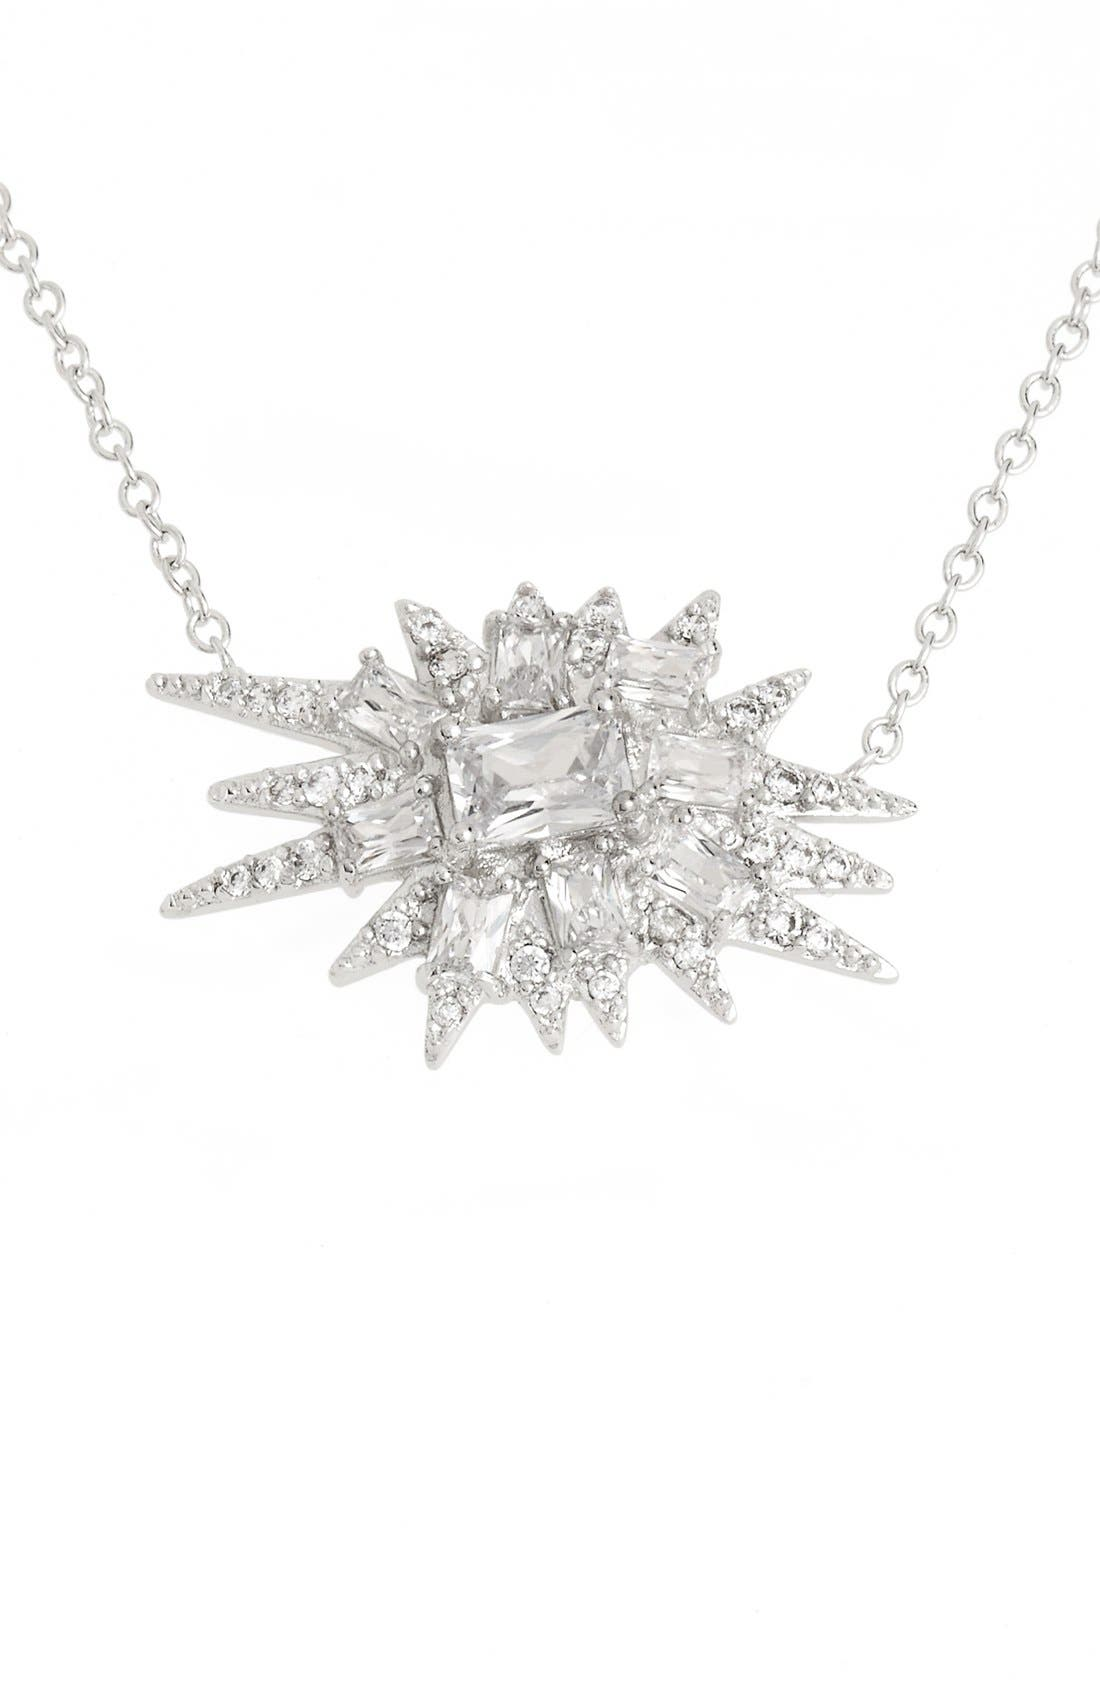 CZ BY KENNETH JAY LANE Explosion Cubic Zirconia Pendant Necklace